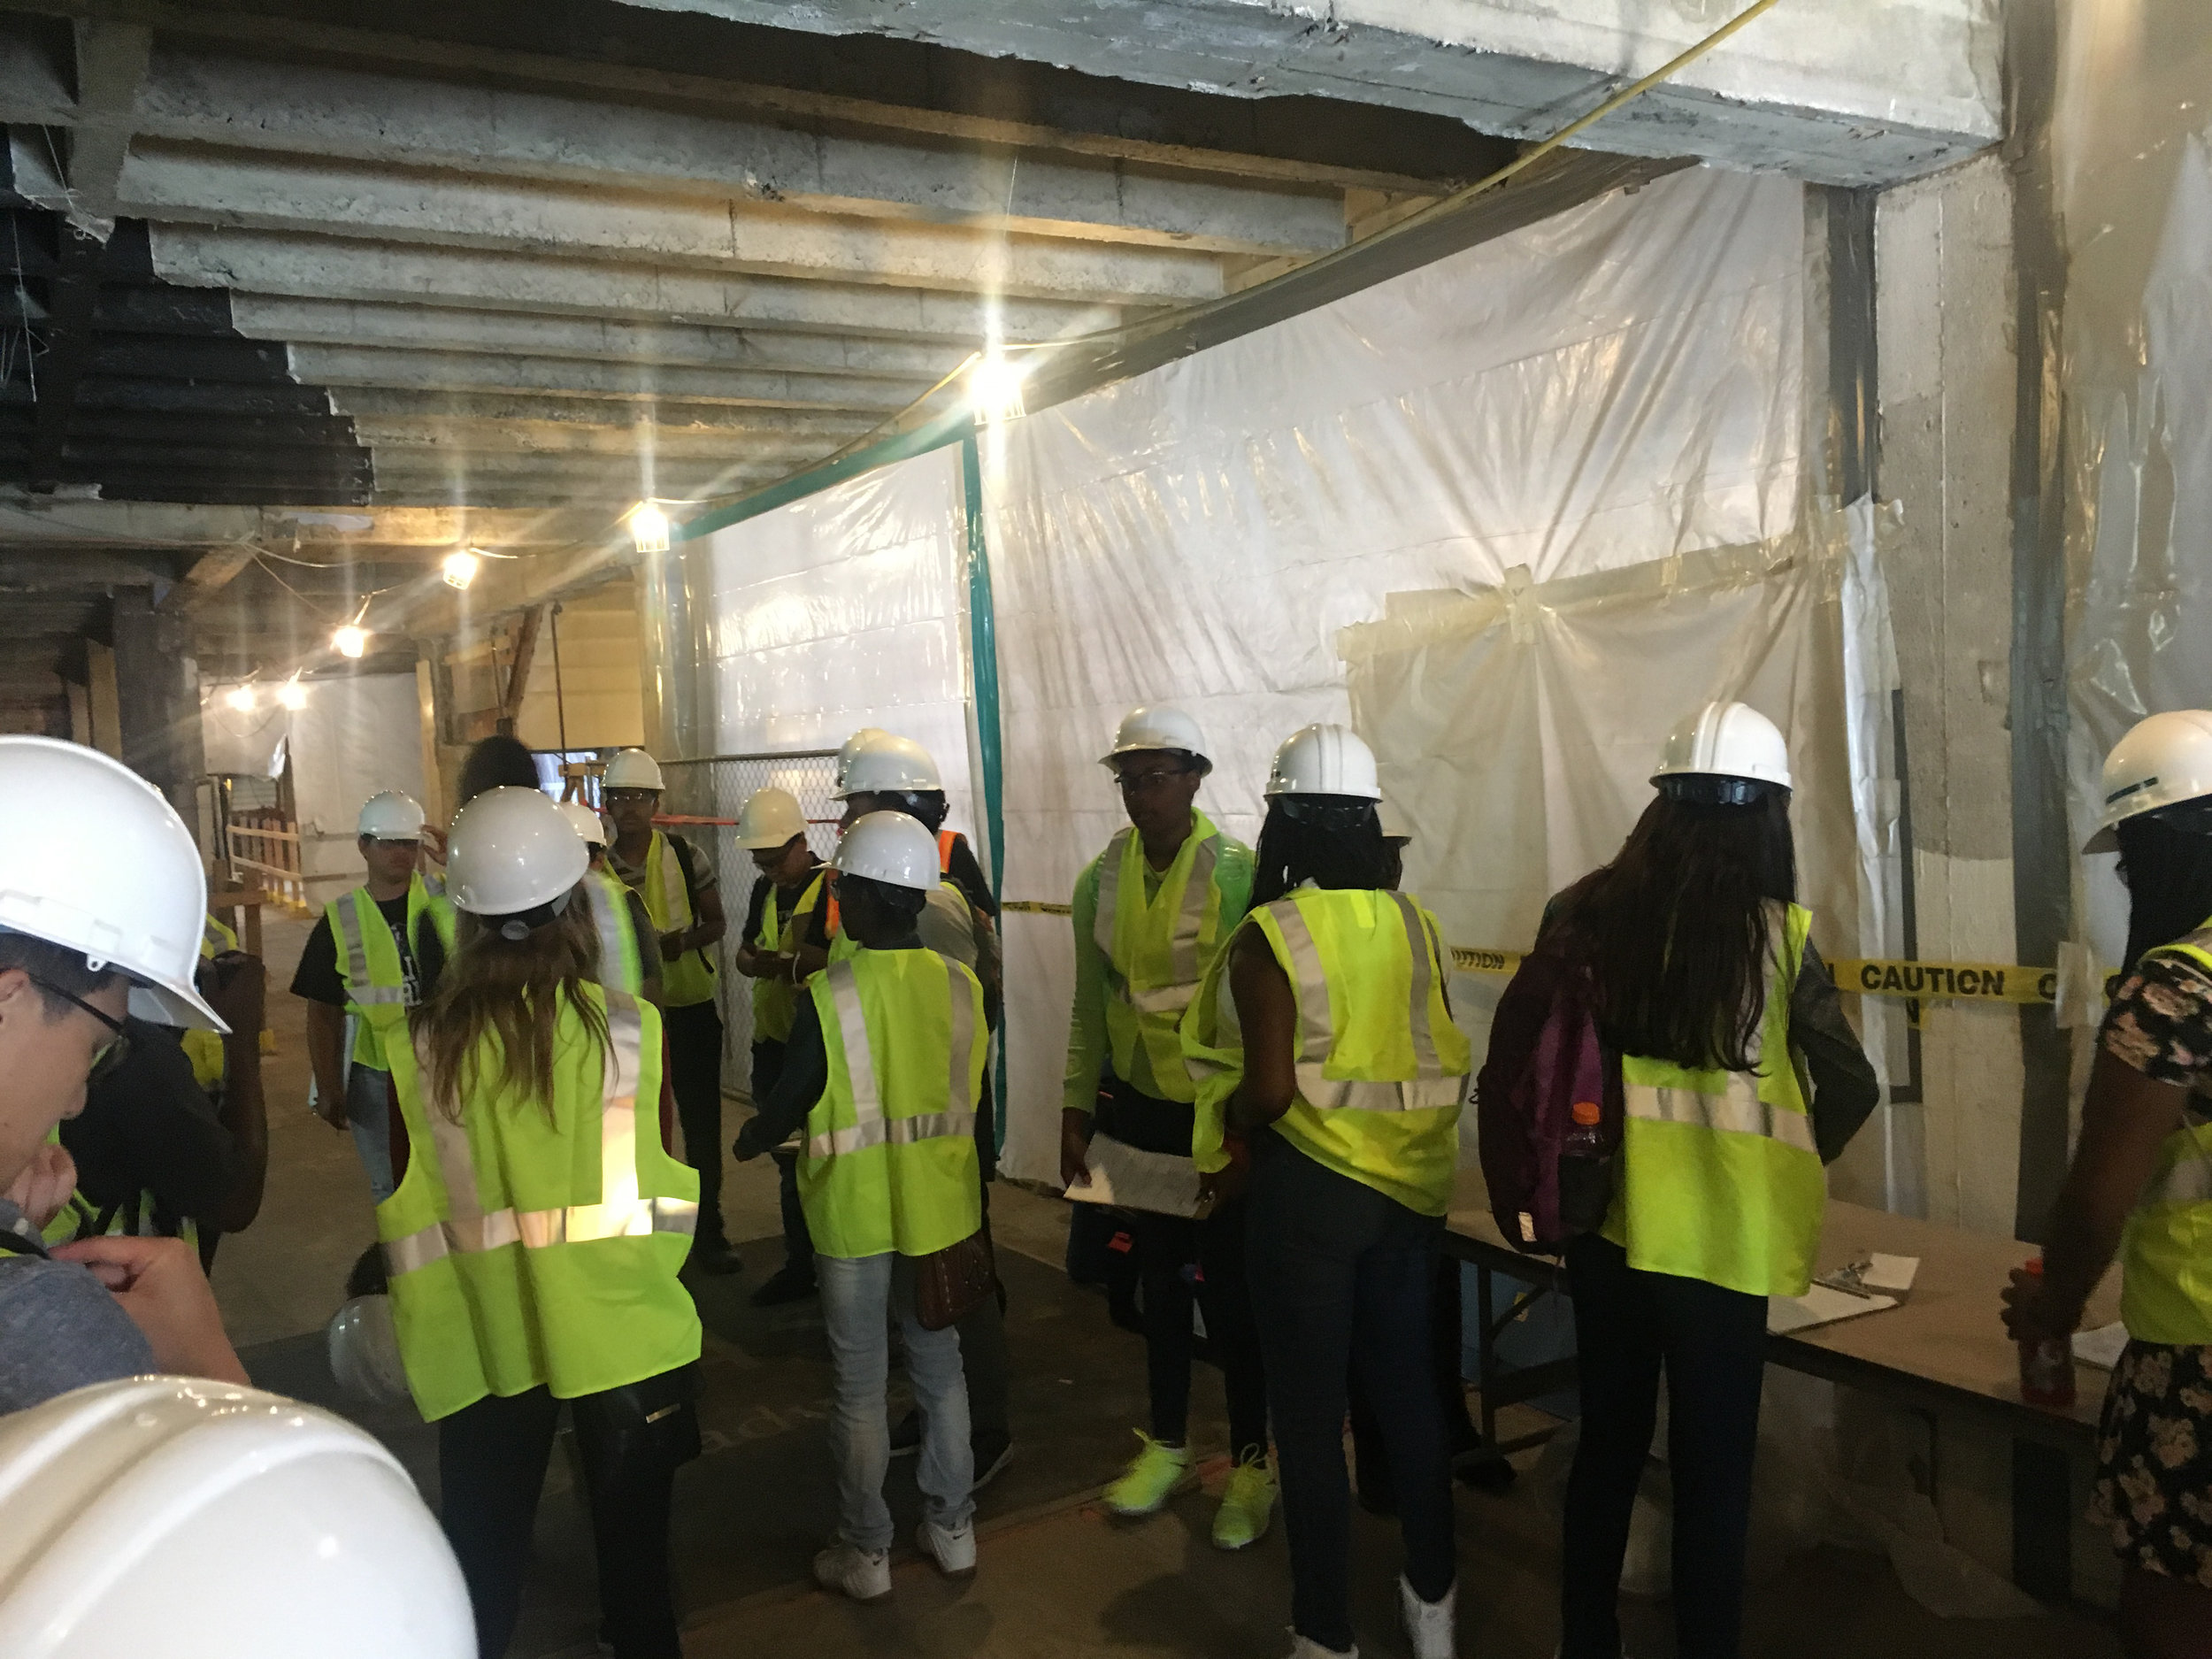 At the given site (Uber Headquarter, Oakland), the students are understanding the concept and the structure of the building